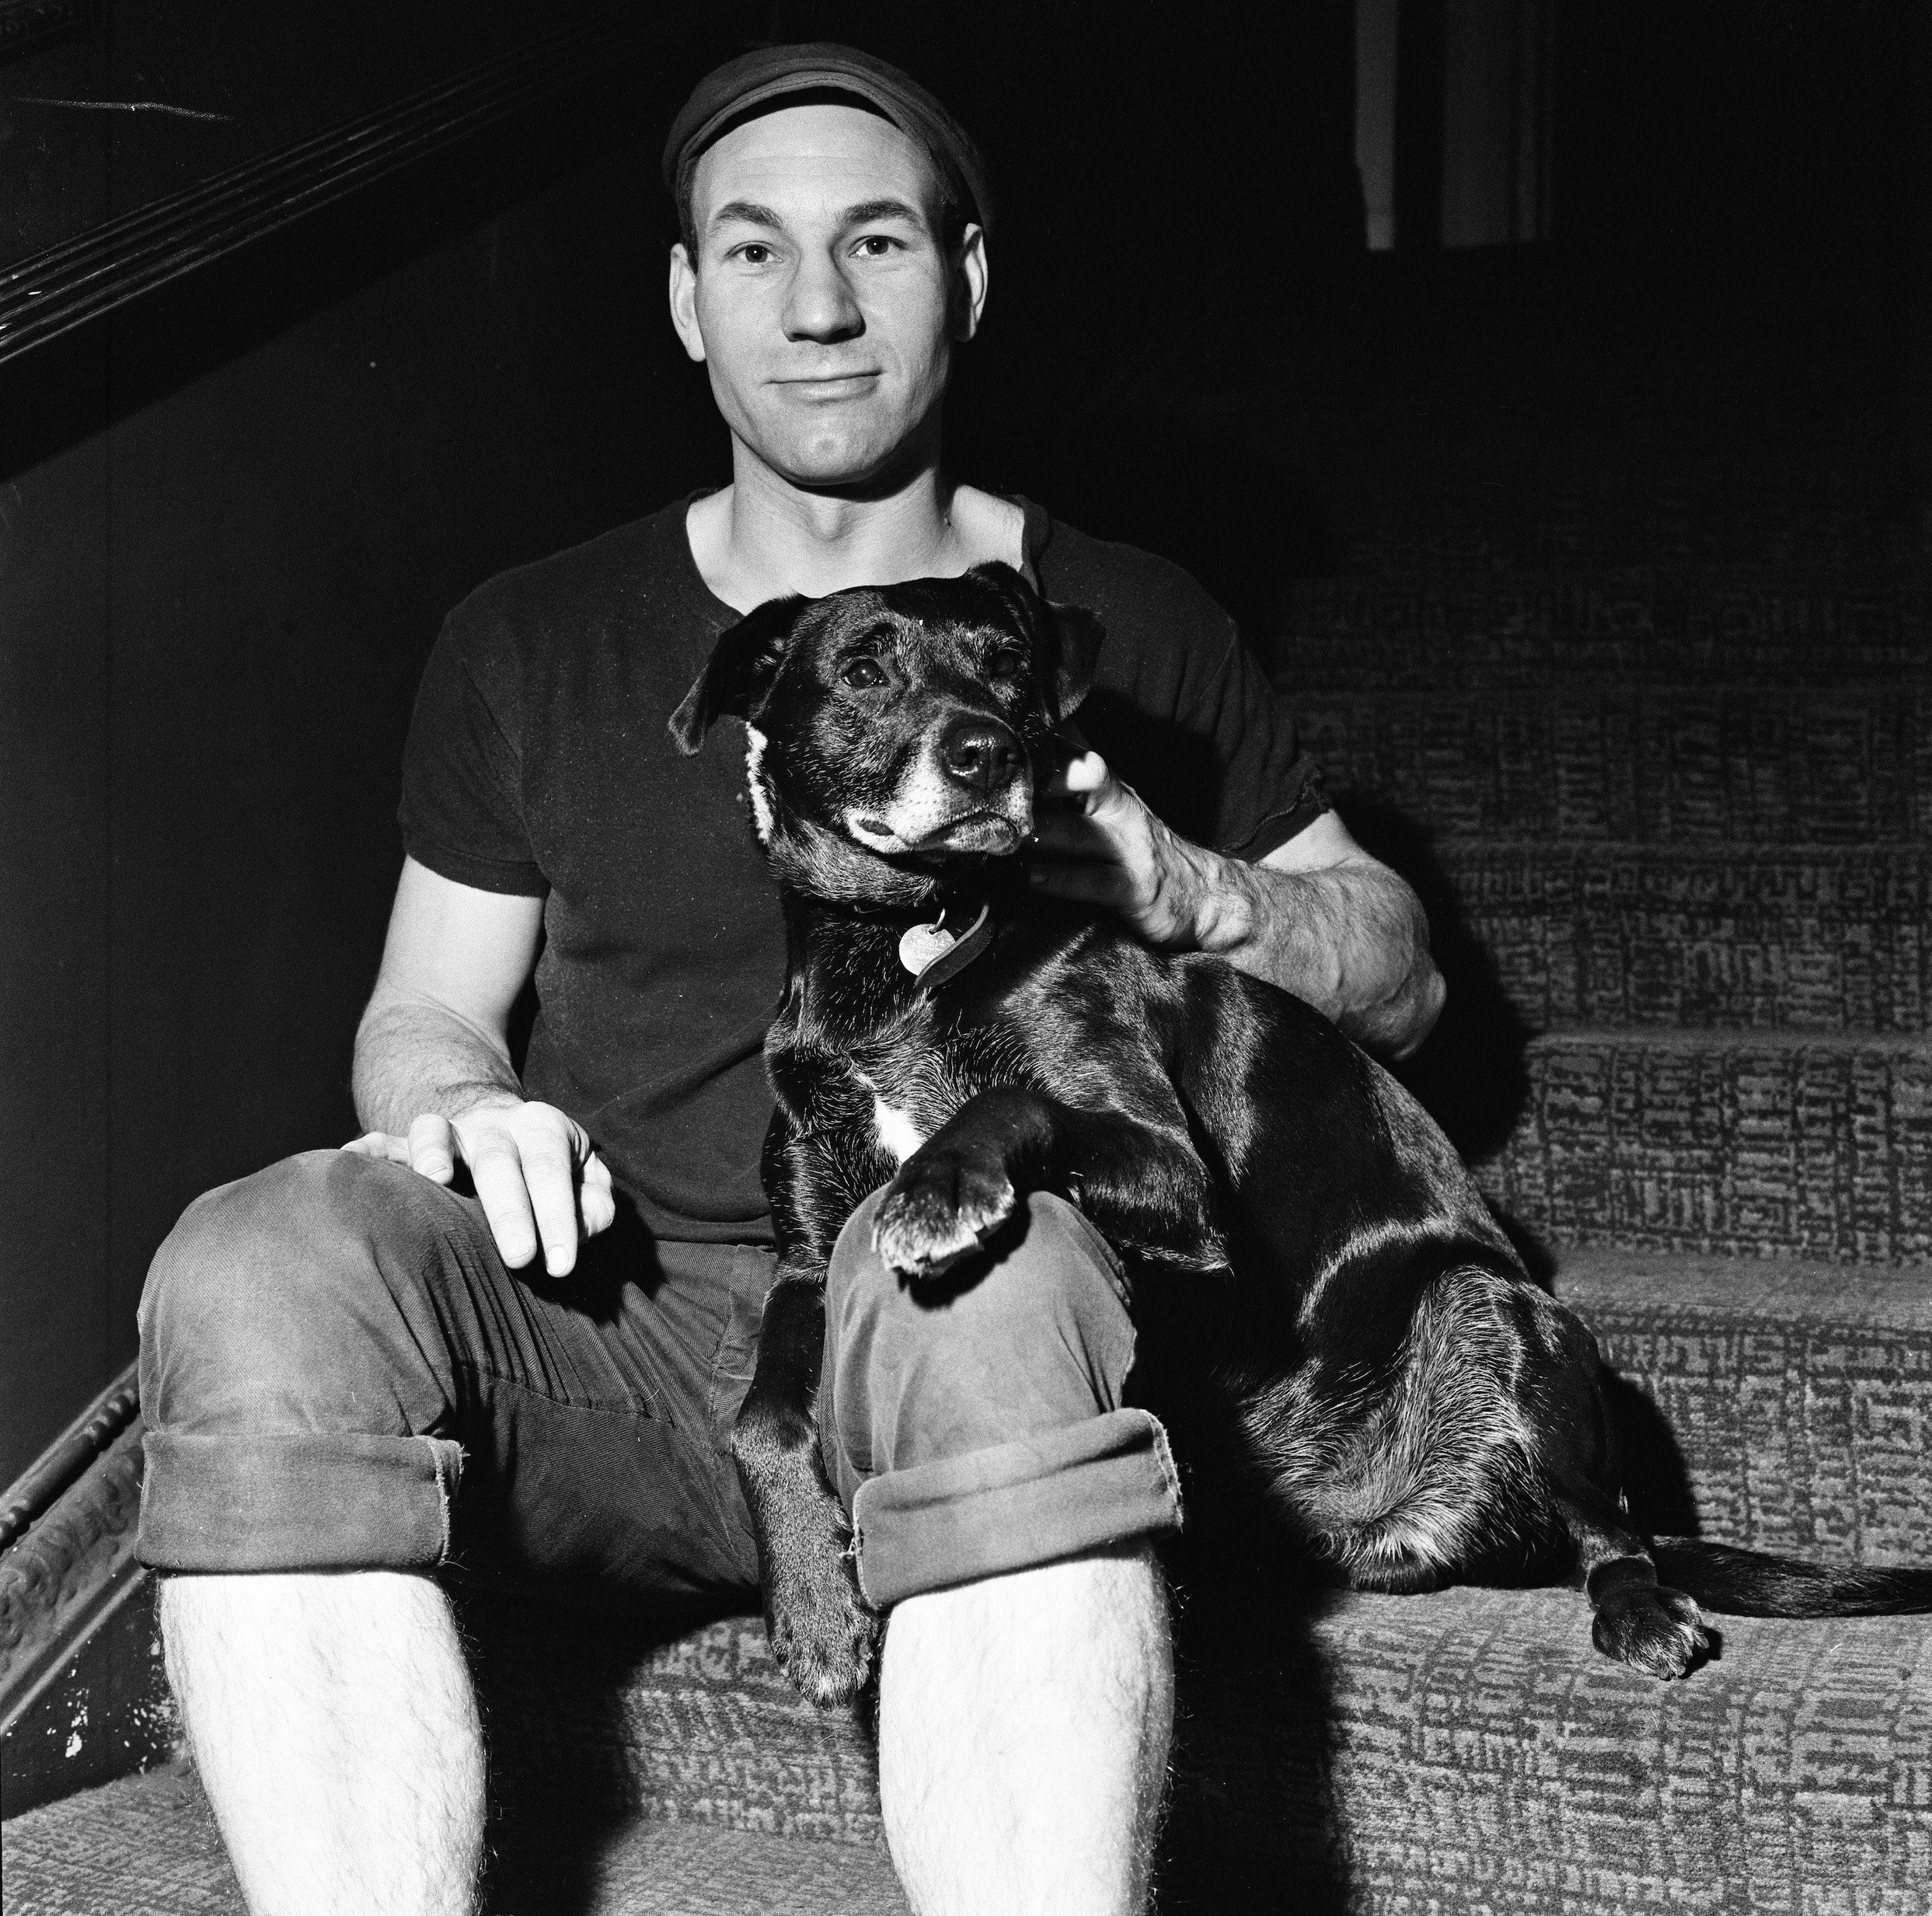 Patrick sitting on some stairs with a black dog on his lap